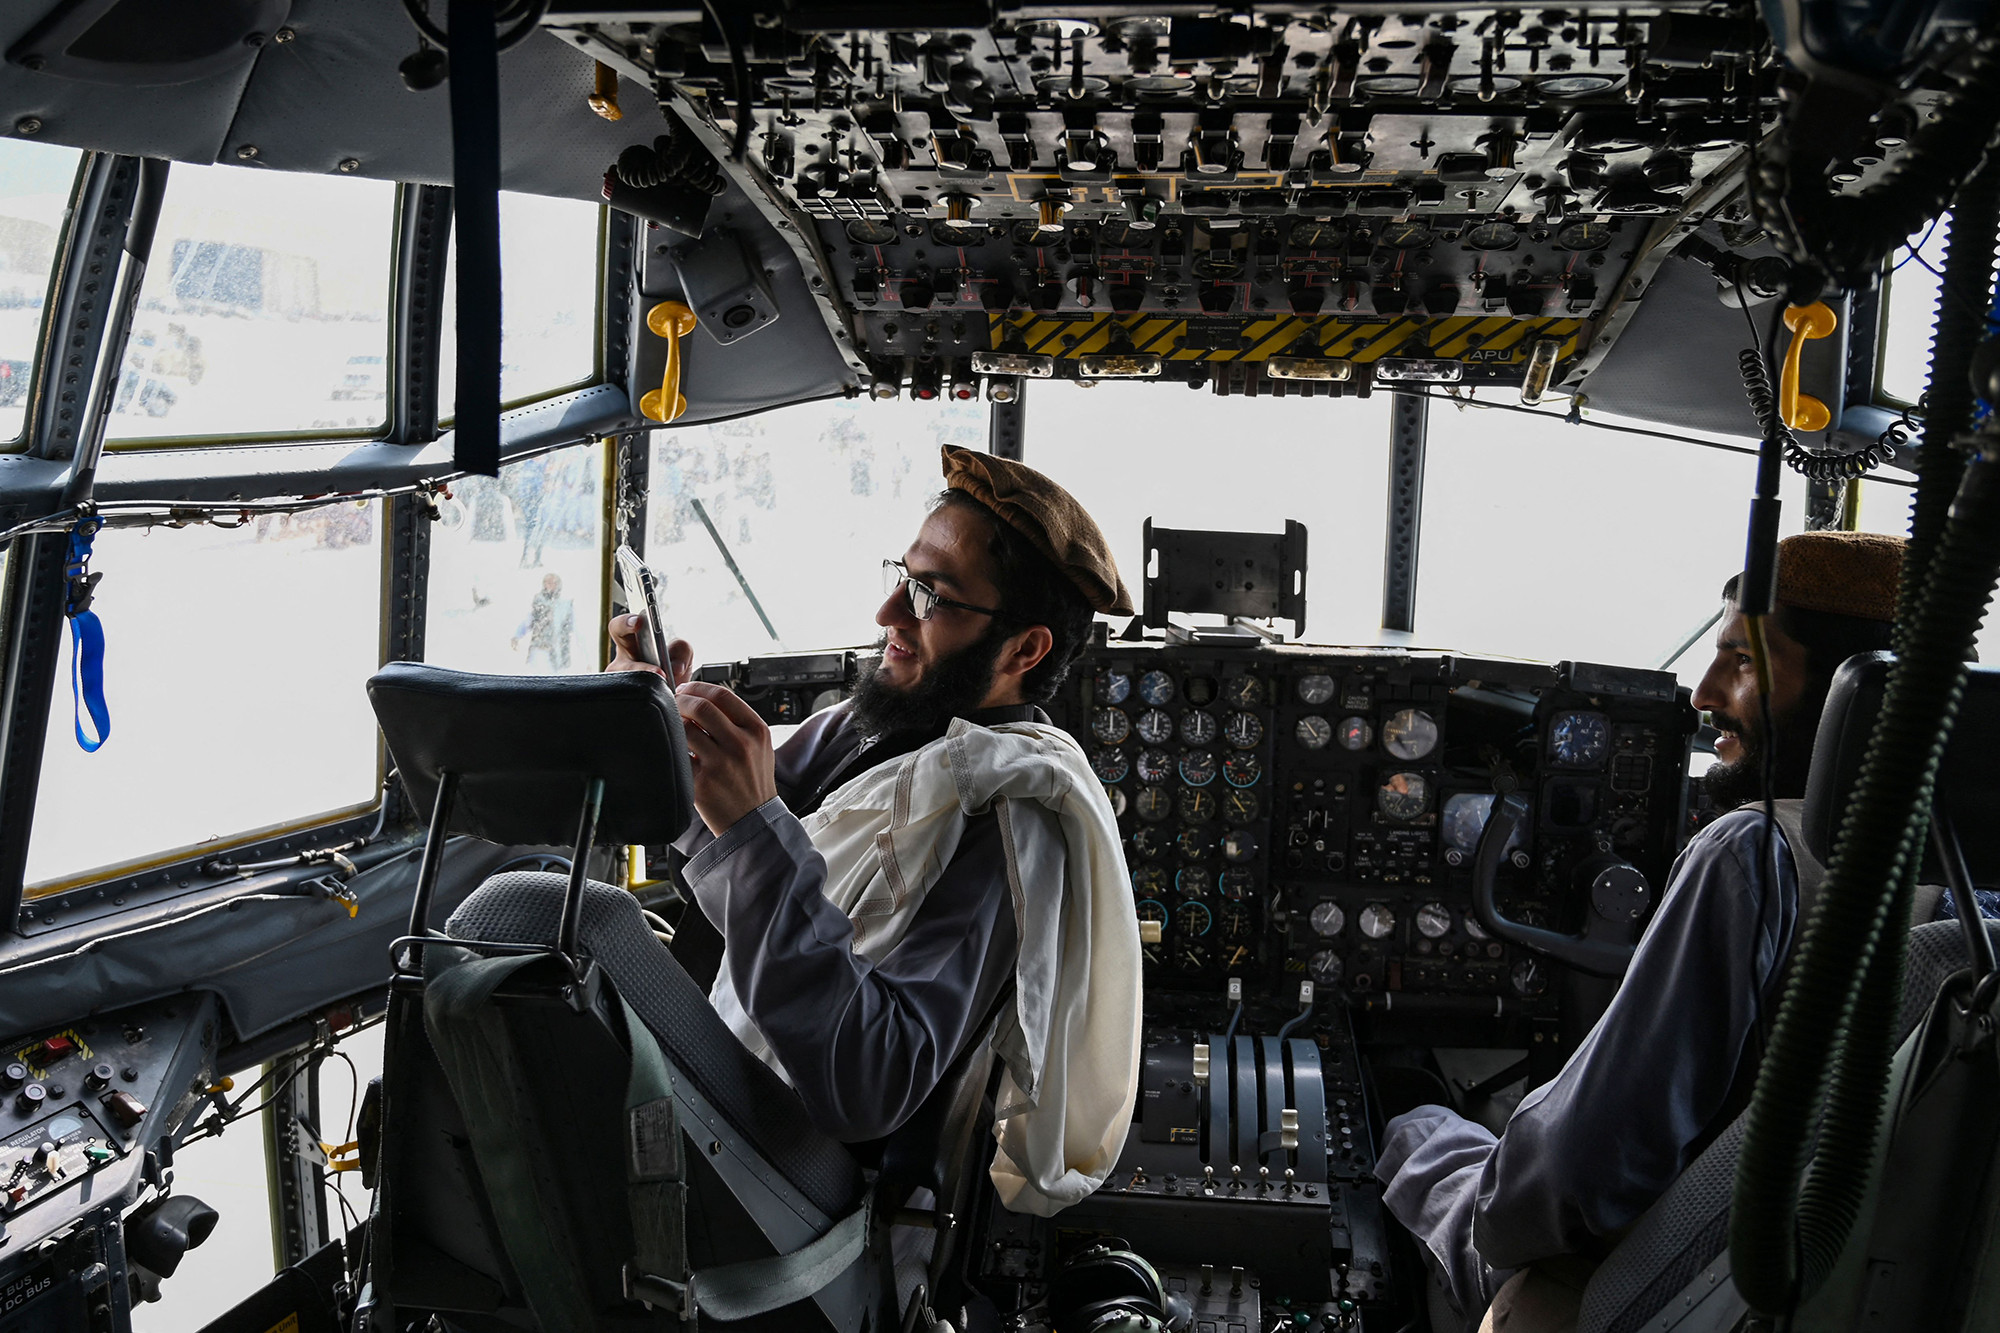 Taliban fighters sit in the cockpit of an Afghan Air Force aircraft.